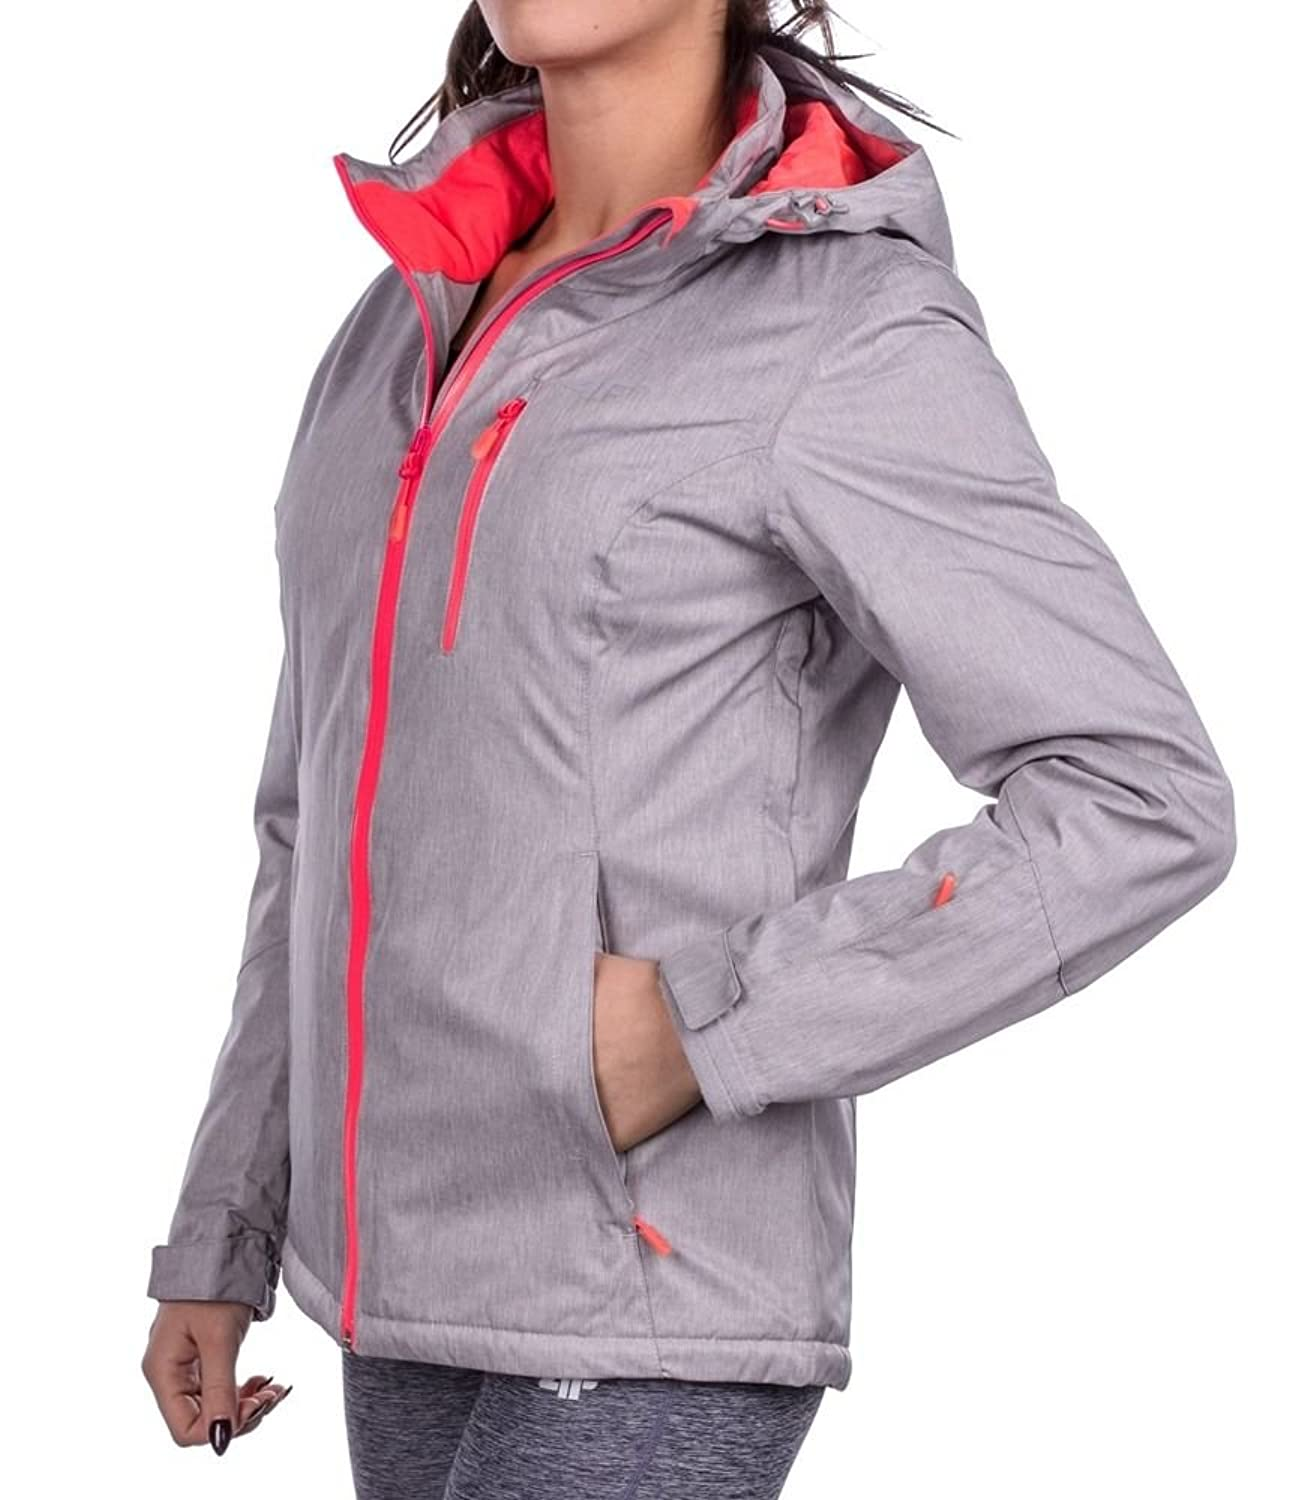 Nieve Y Nieve Ropa Impermeable Impermeable De Ropa De Y qnUB8na7